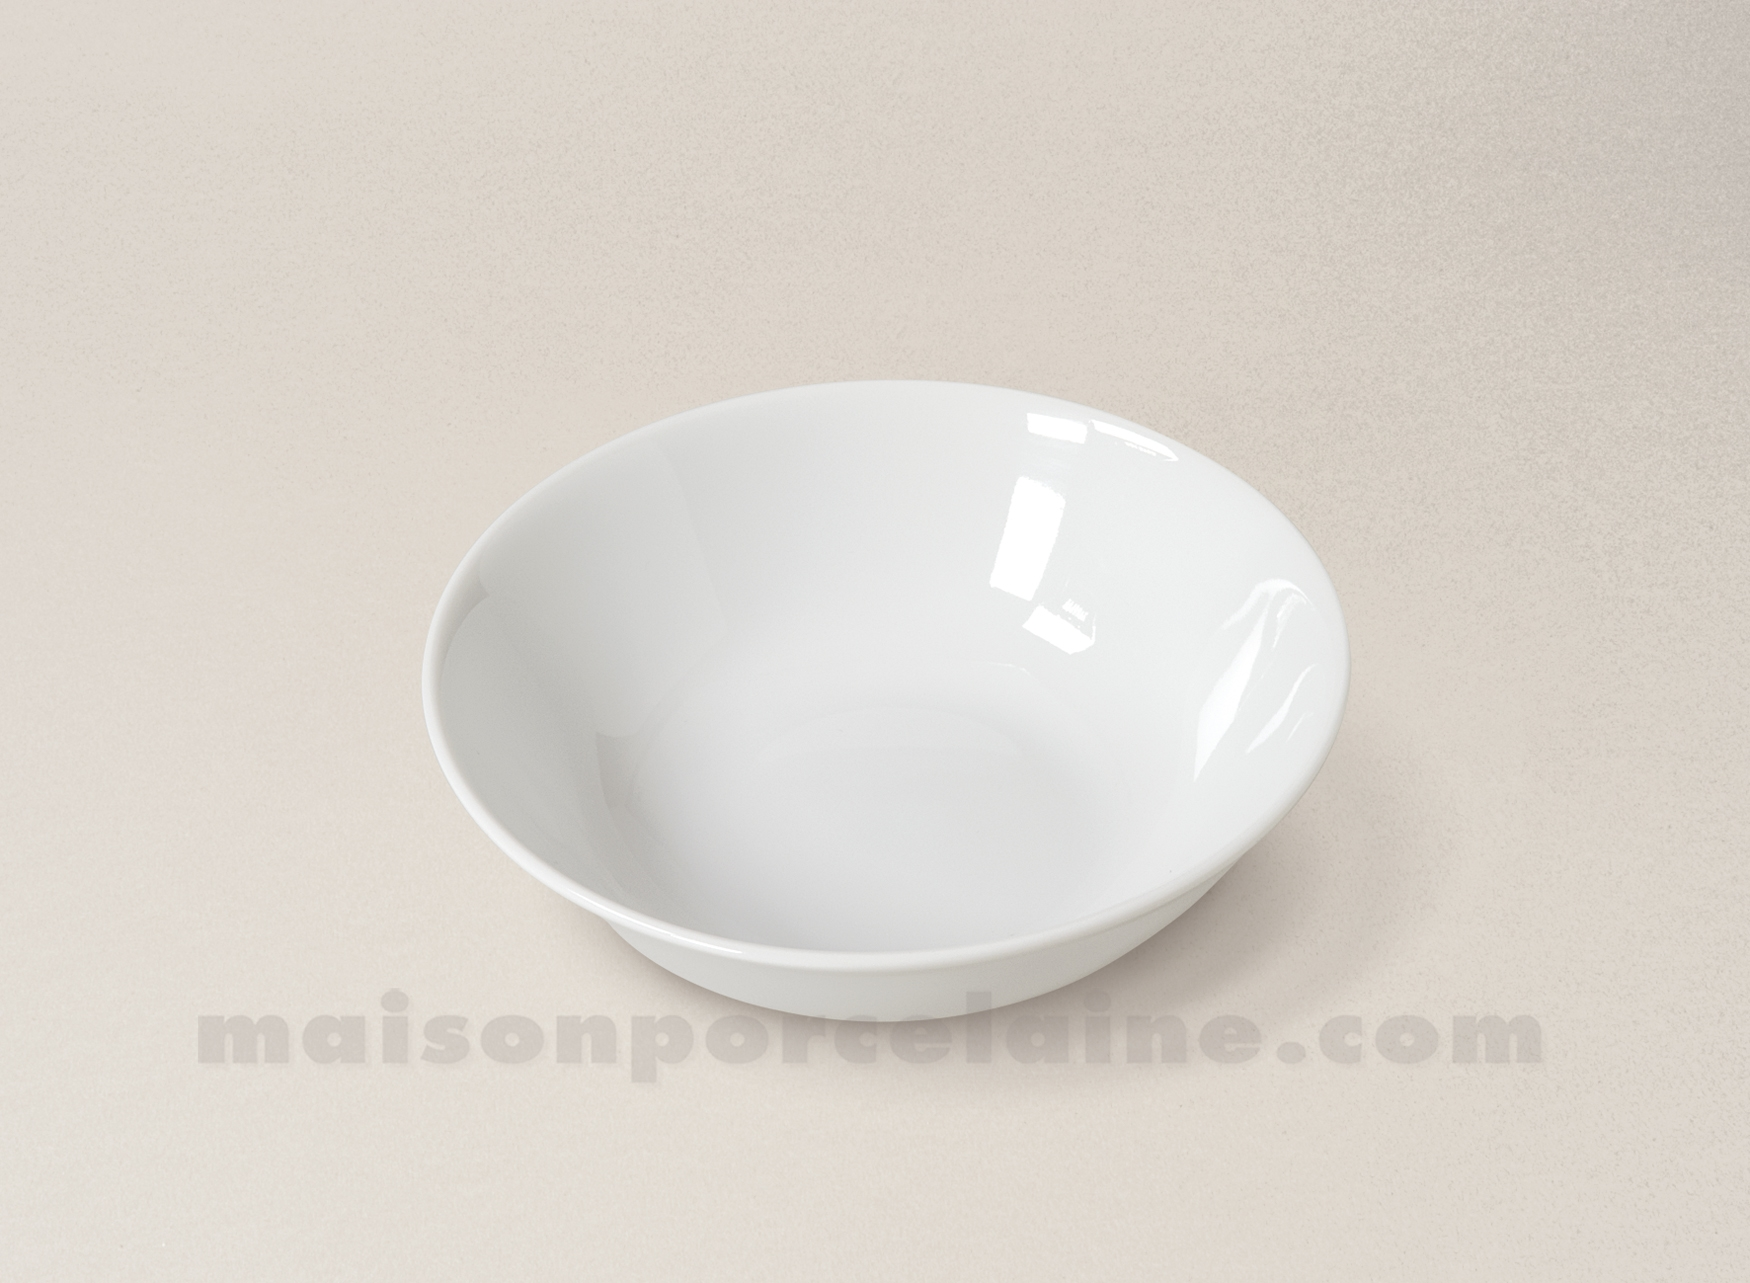 Coupelle creme limoges porcelaine blanche envie d16 for Maison de la porcelaine